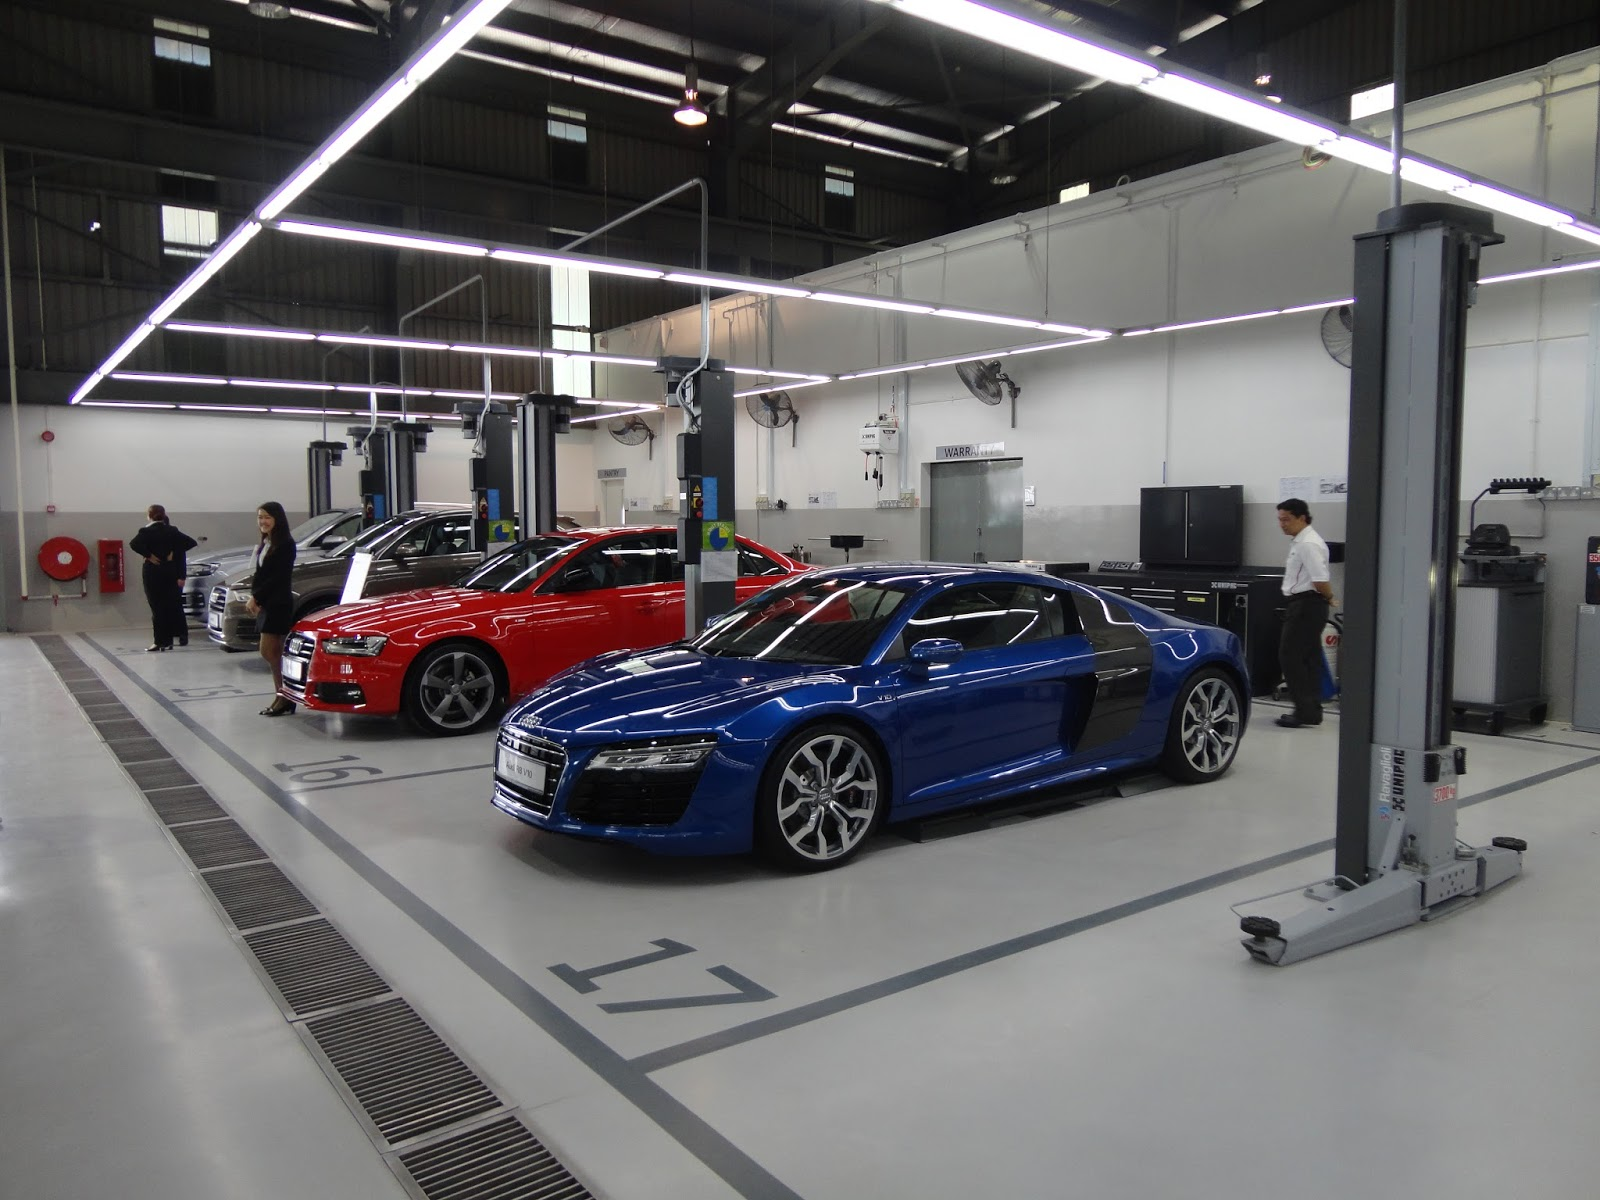 Motoring-Malaysia: THE AUDI KUALA LUMPUR SERVICE CENTRE IS NOW OPEN